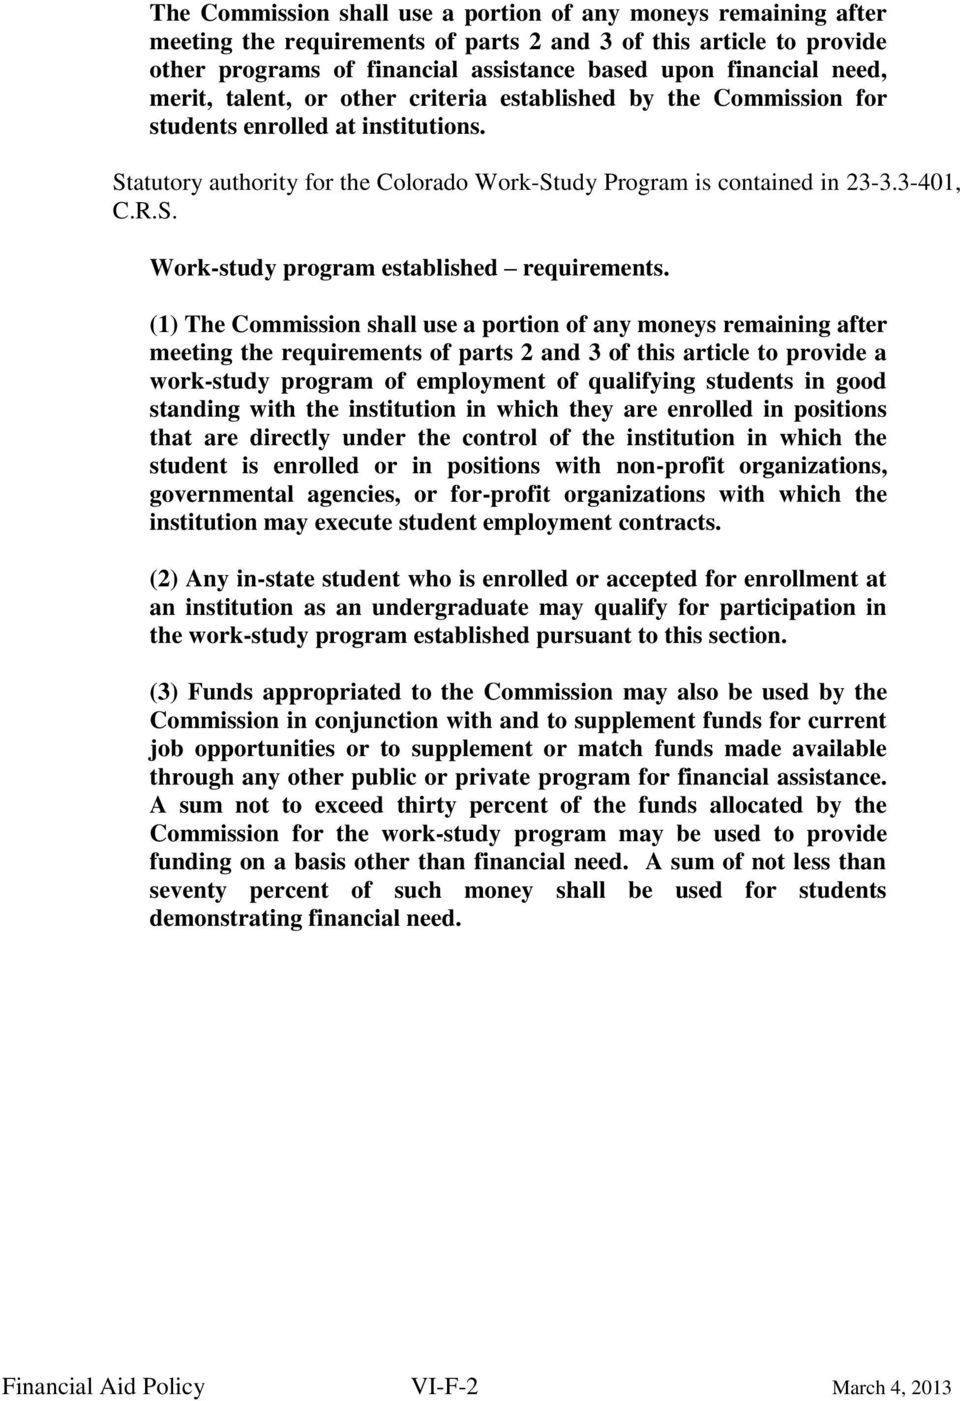 (1) The Commission shall use a portion of any moneys remaining after meeting the requirements of parts 2 and 3 of this article to provide a work-study program of employment of qualifying students in